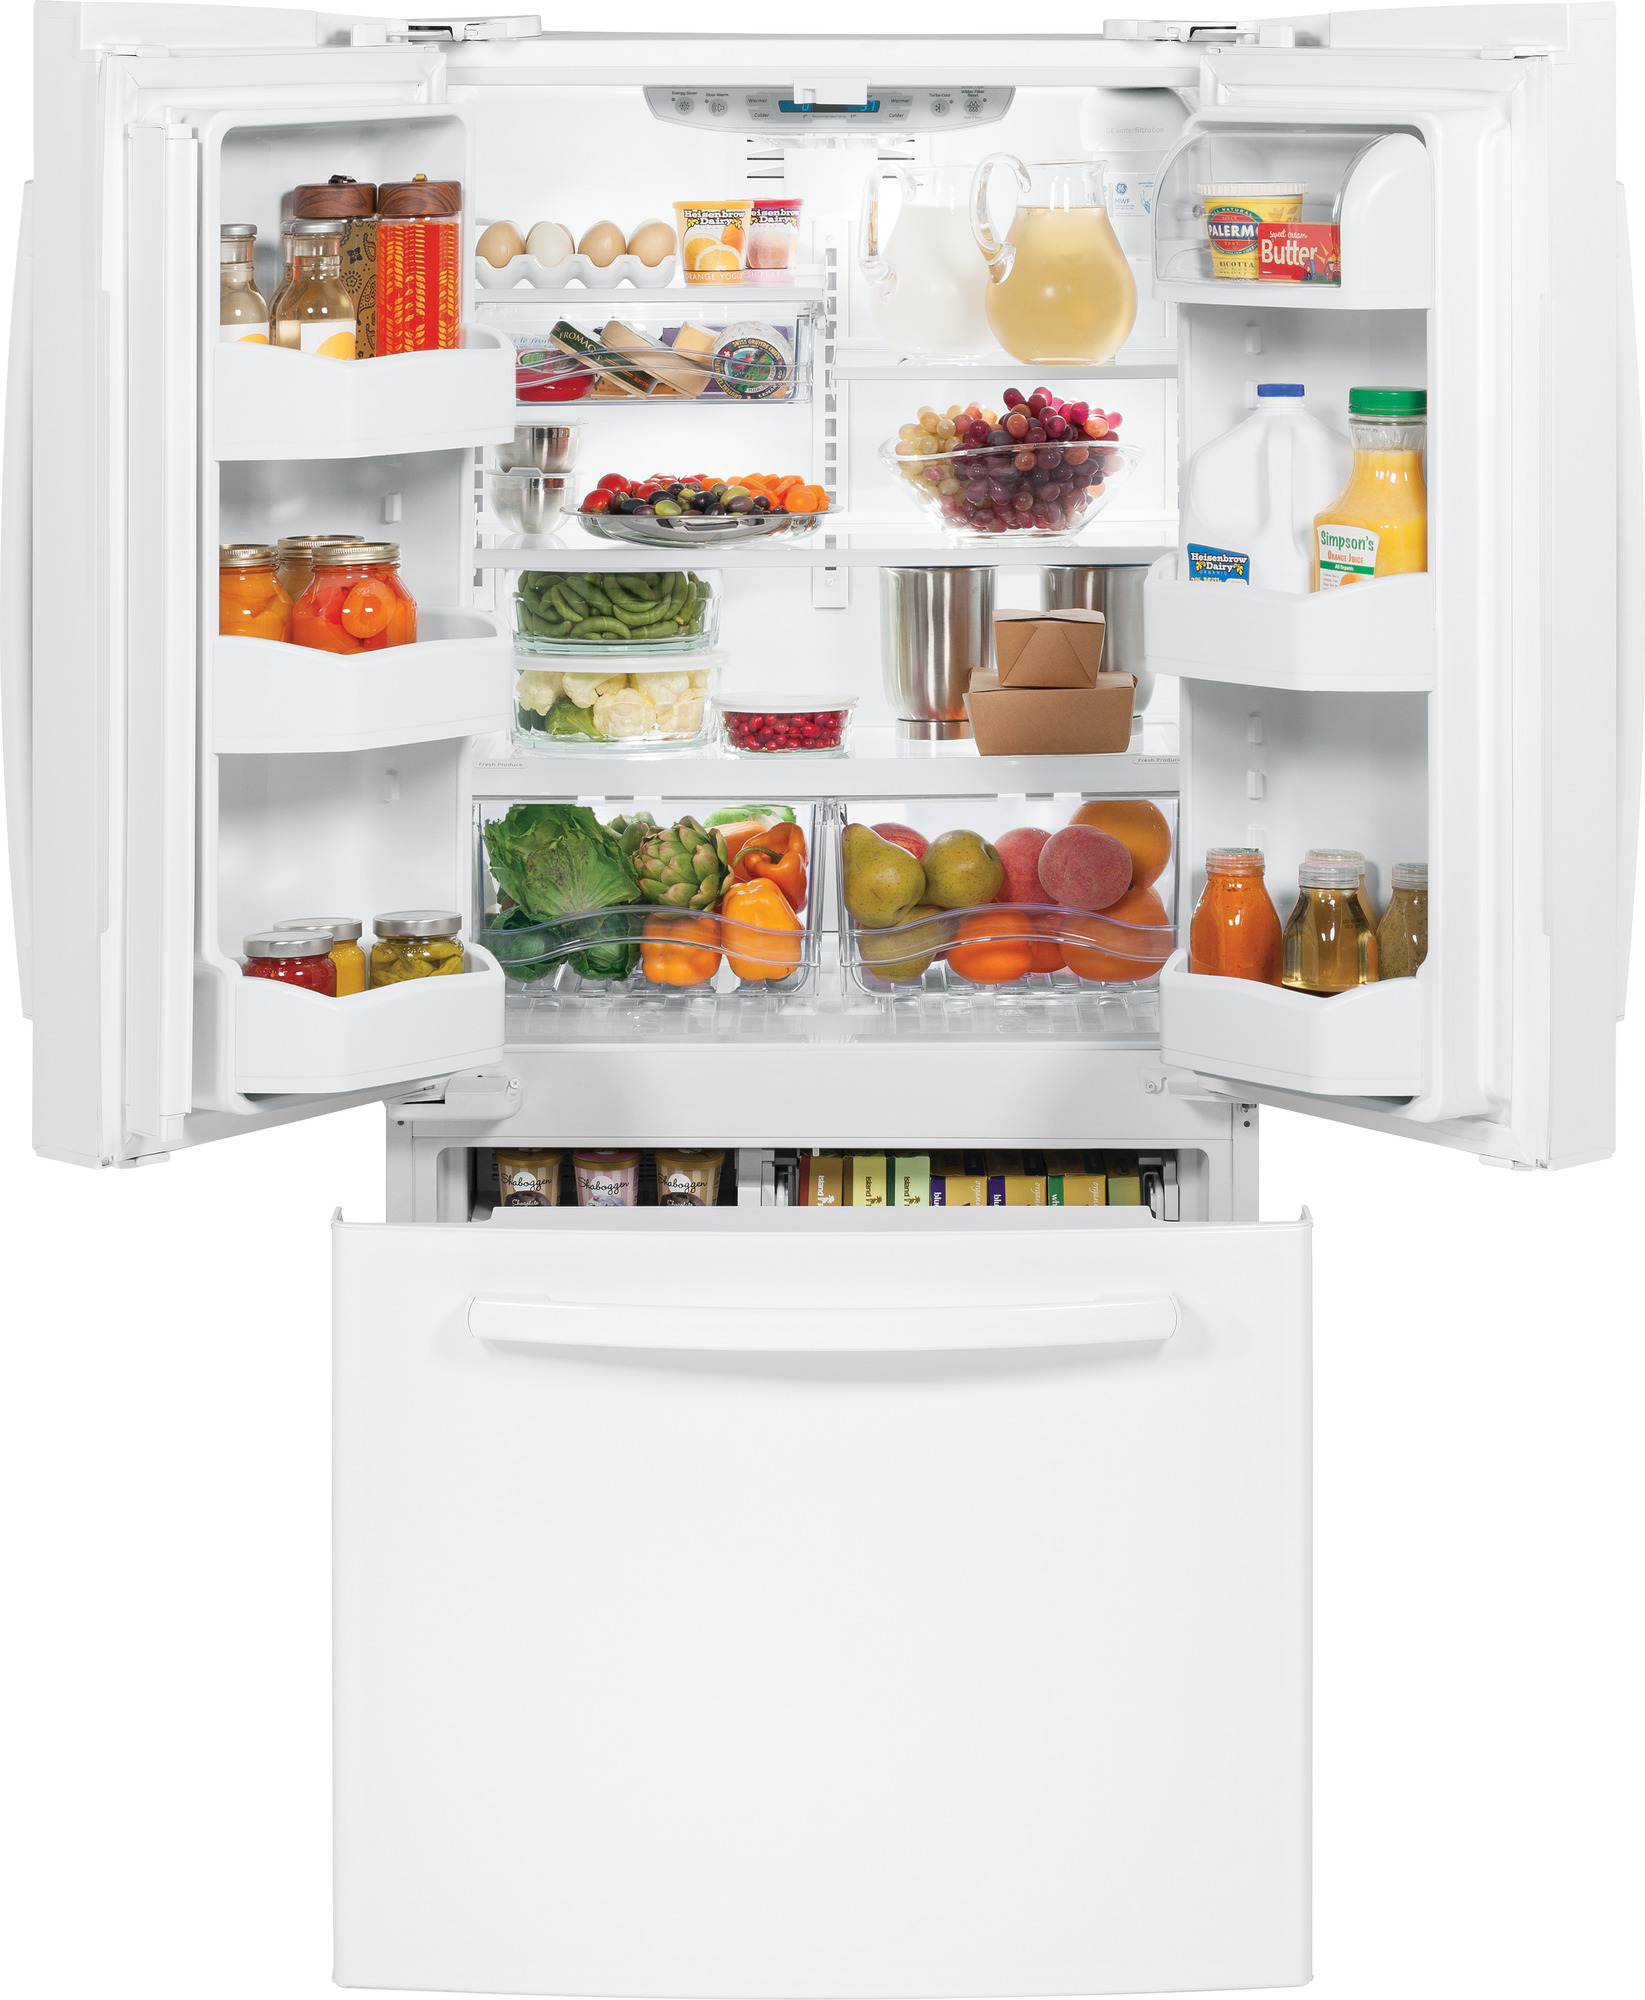 GE Appliances GNS23GGHWW 22.7 cu. ft. French-Door Refrigerator - White